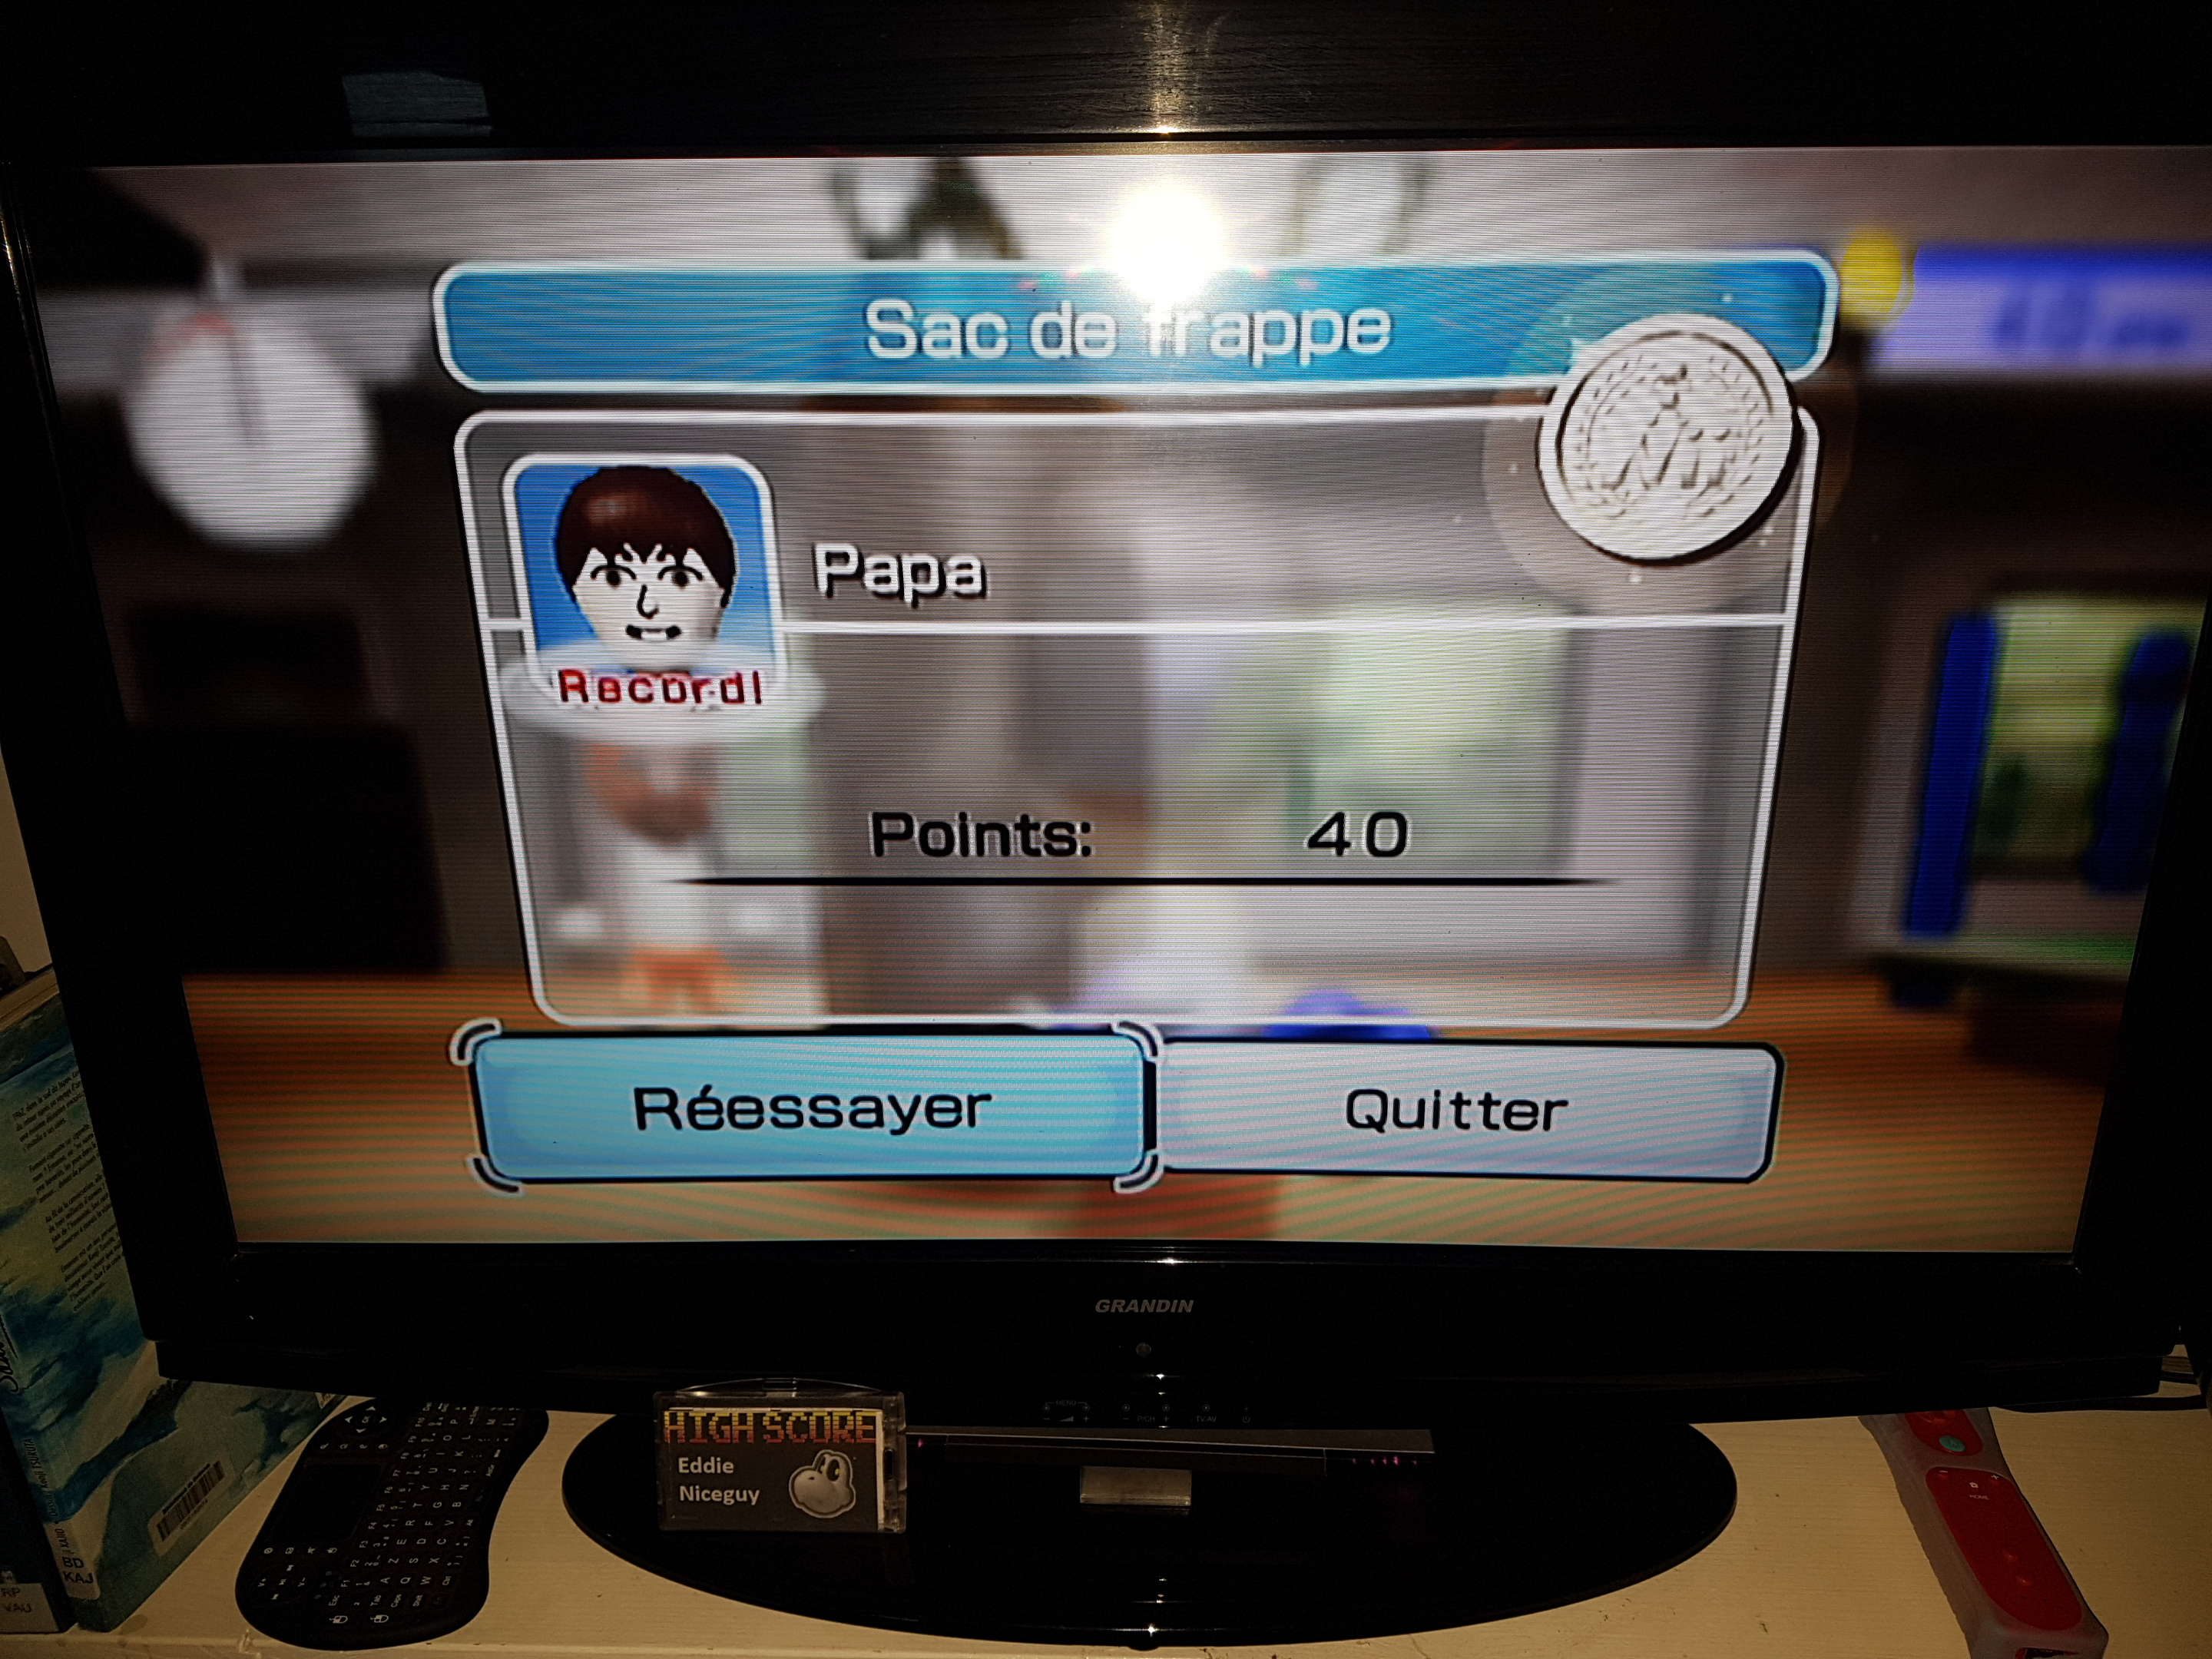 EddieNiceguy: Wii Sports: Boxing [Working the Bag] (Wii) 40 points on 2019-06-15 14:42:27